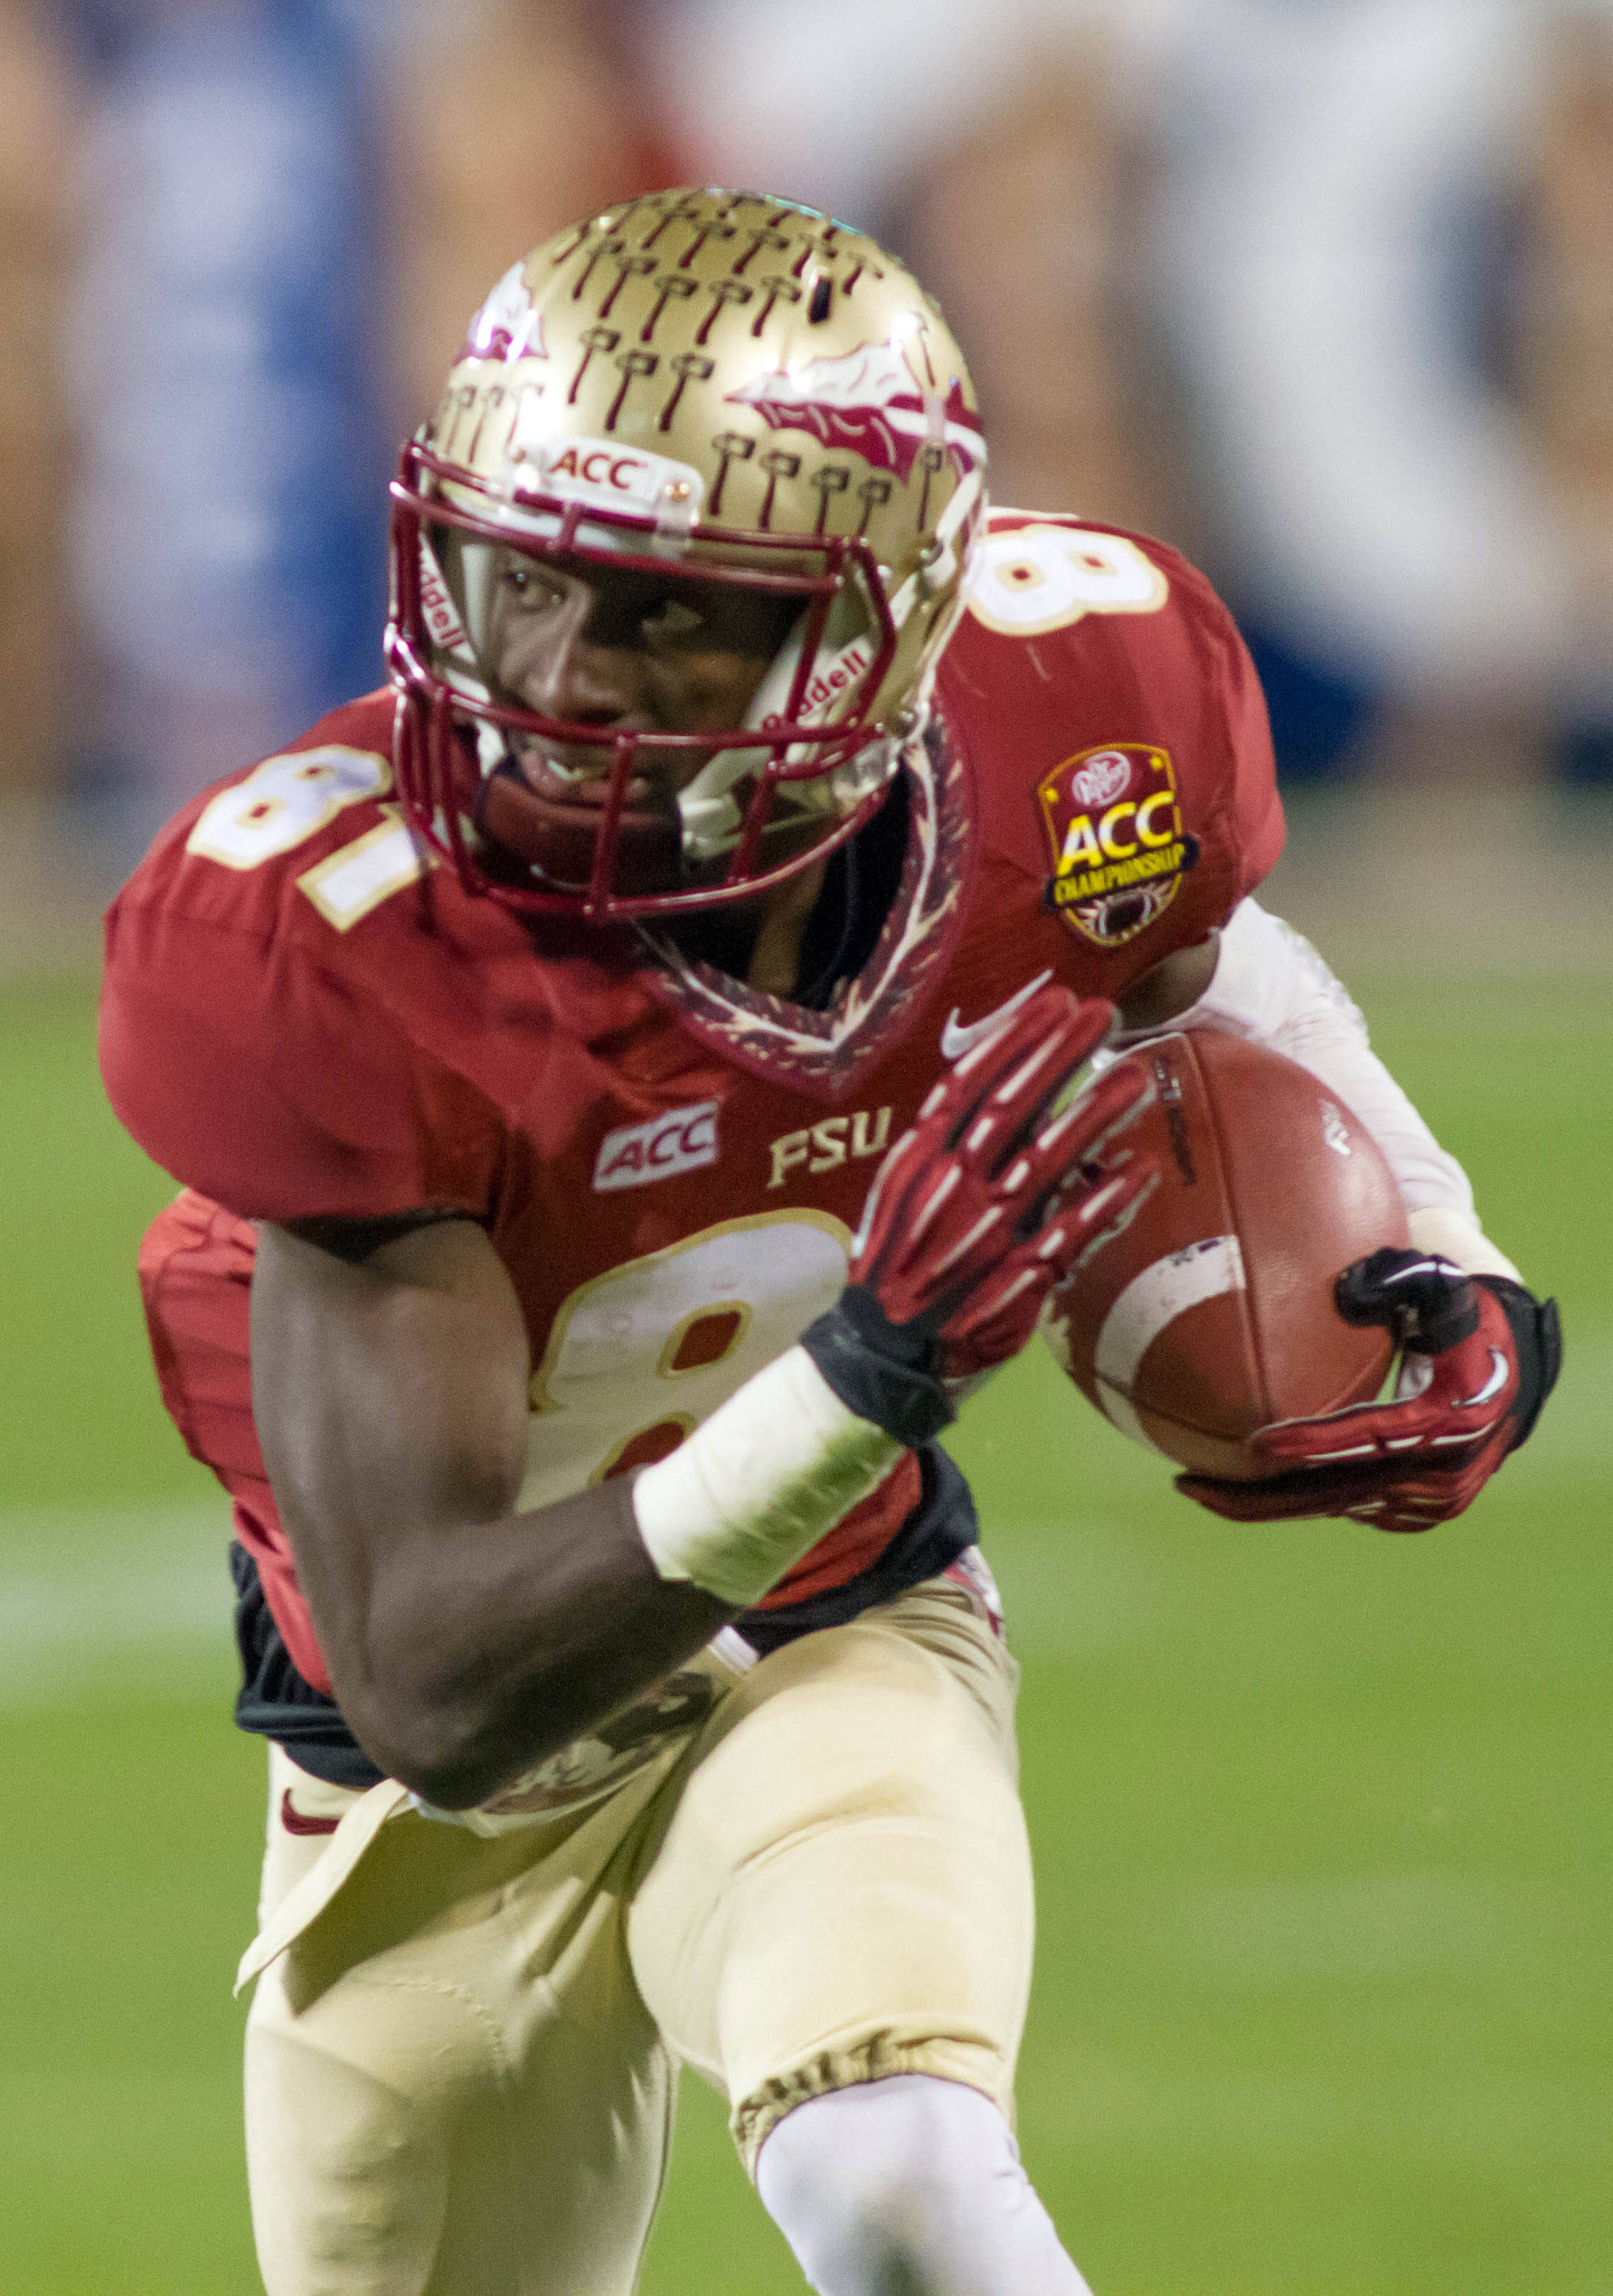 Dec 7, 2013; Charlotte, NC, USA; Florida State Seminoles wide receiver Kenny Shaw (81) runs after catching a pass during the second quarter against the Duke Blue Devils at Bank of America Stadium. Mandatory Credit: Jeremy Brevard-USA TODAY Sports